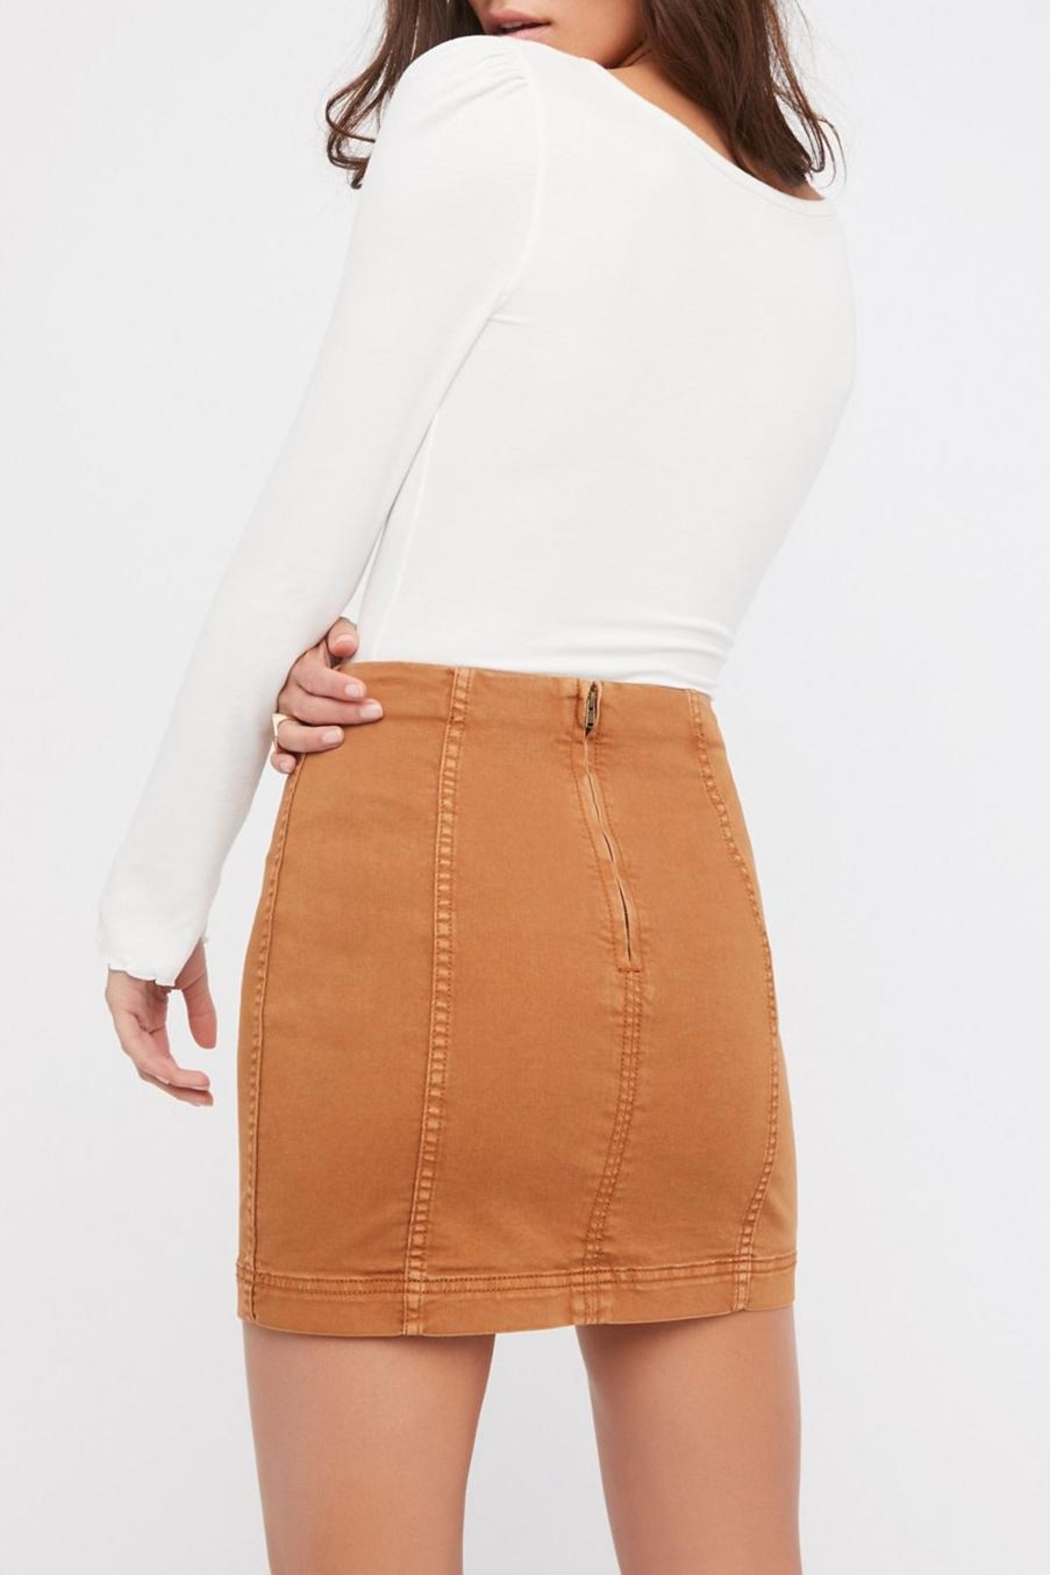 Free People Modern Femme Denim Skirt - Front Full Image